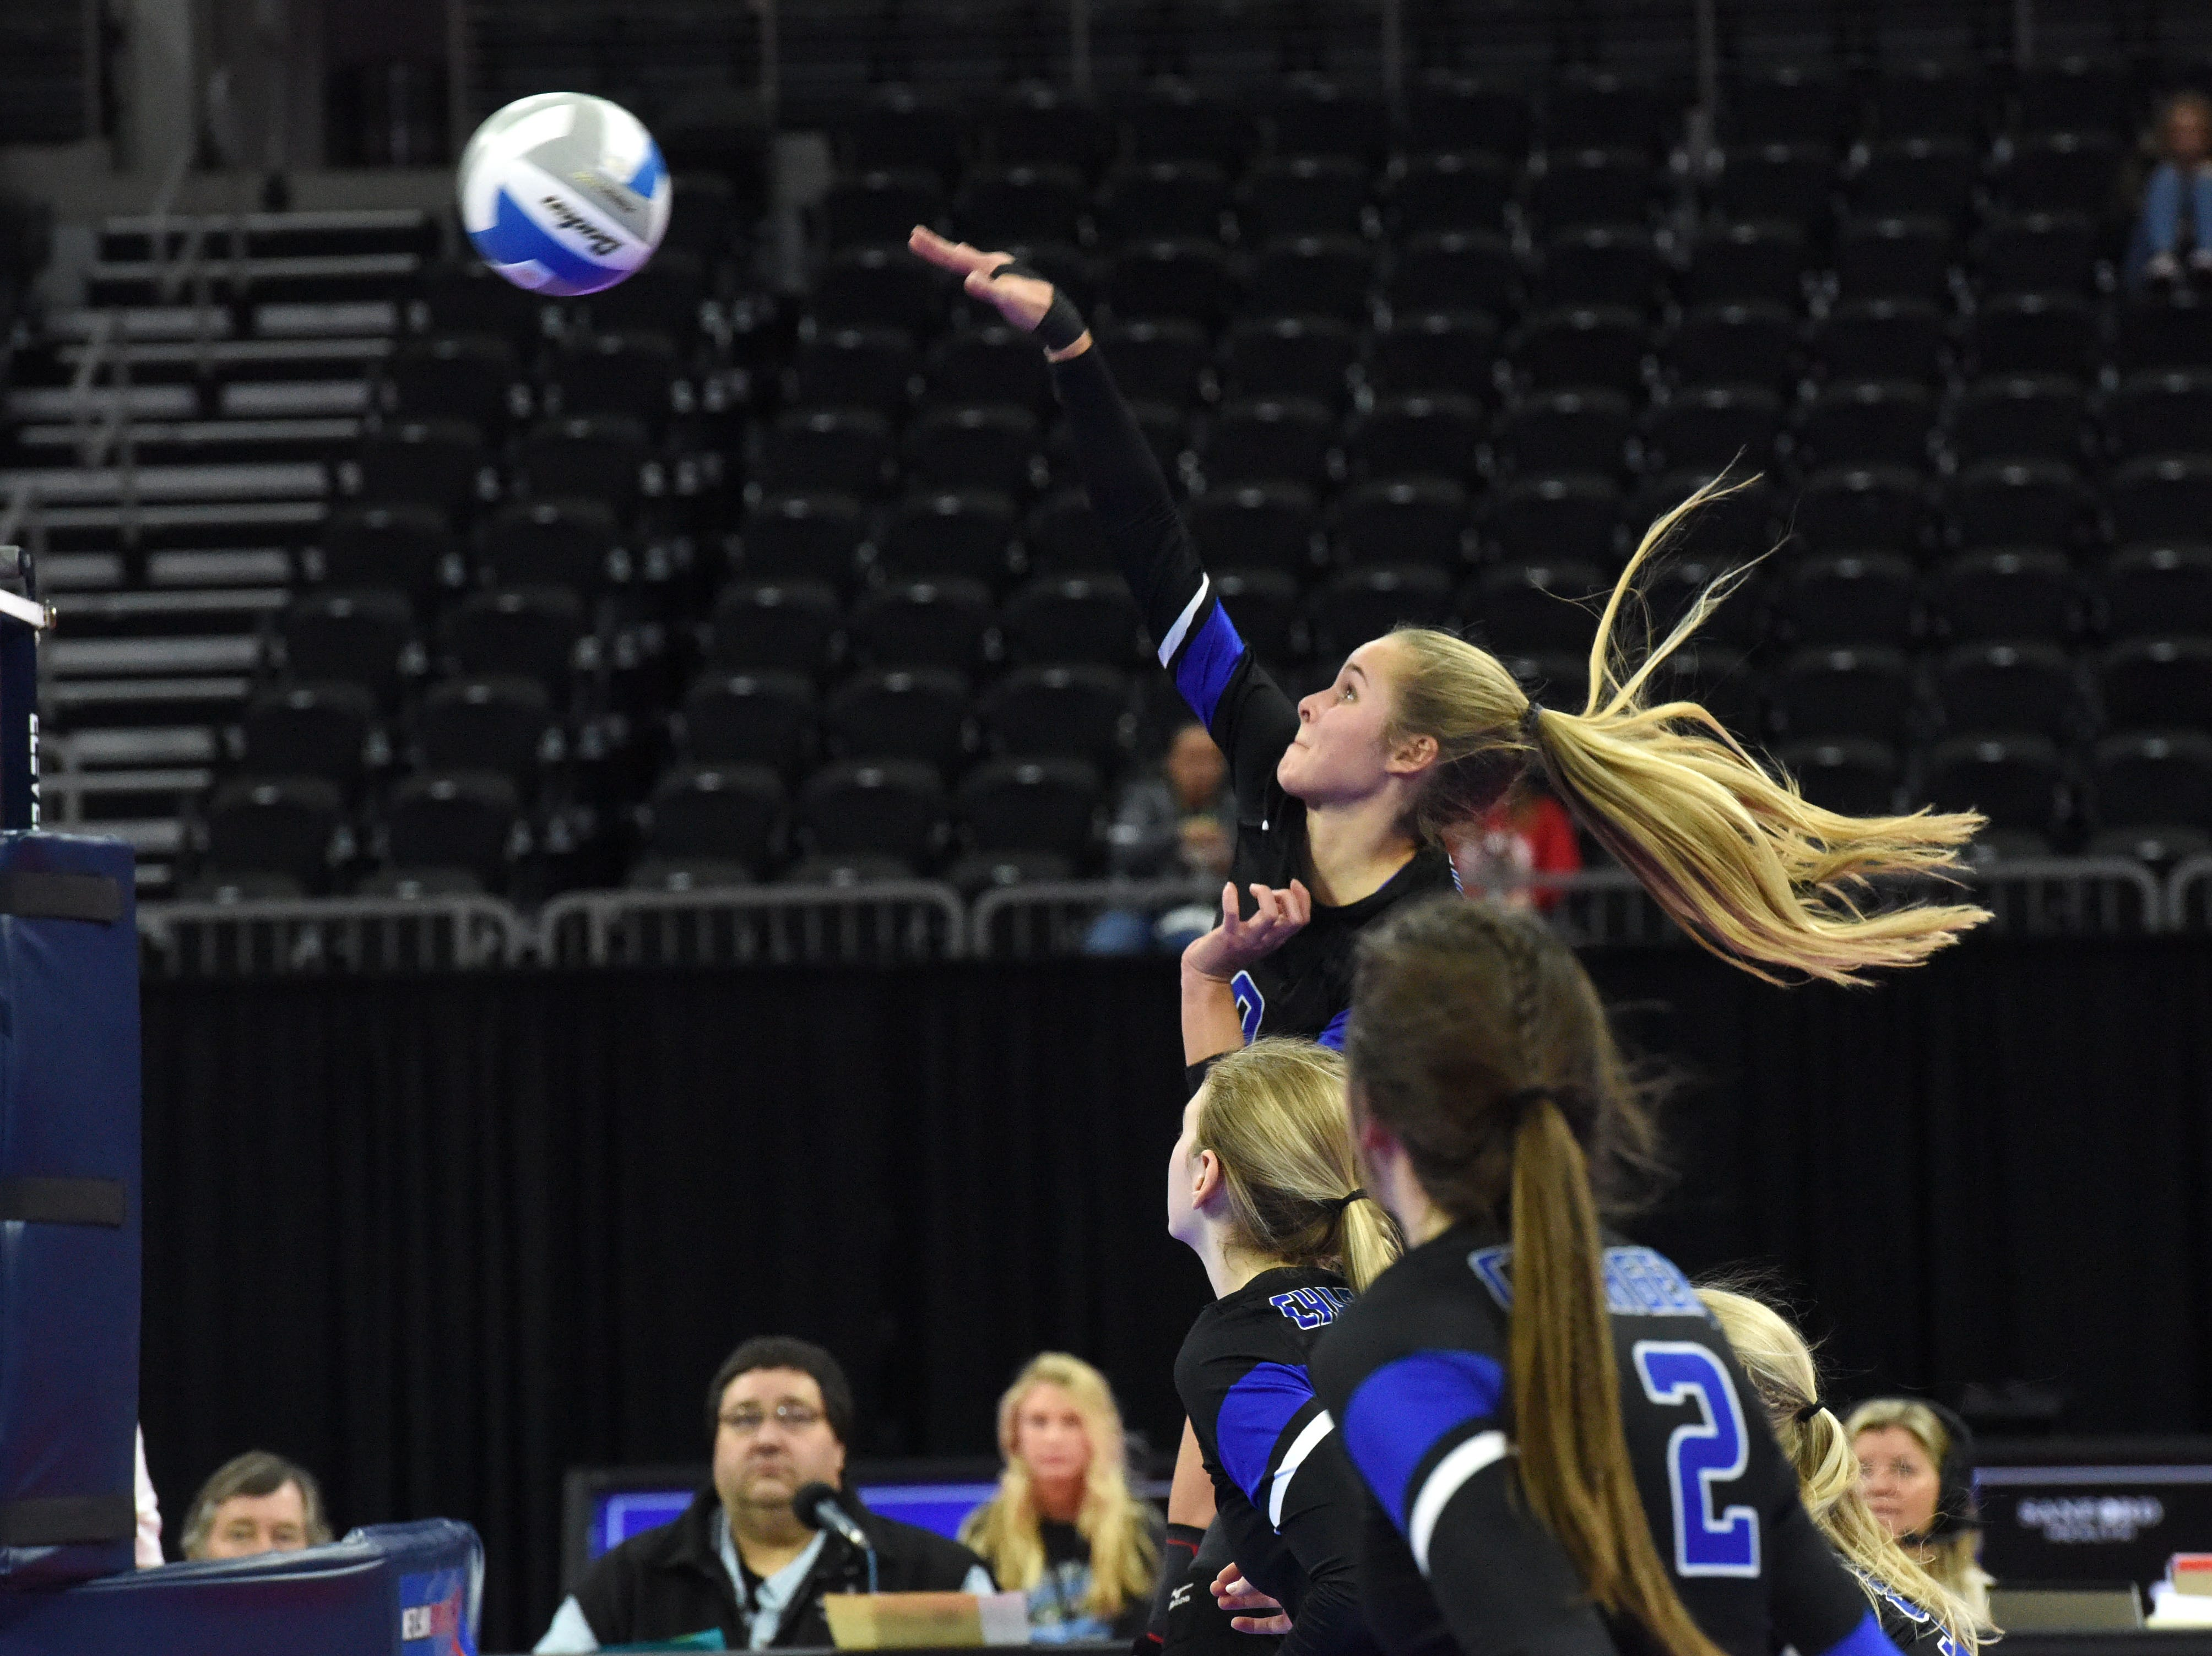 Sioux Falls Christian's Caitlyn Pruis (10) spikes the ball during a match against Miller, Saturday, Nov. 17, 2018, at the Denny Sanford Premier Center in Sioux Falls, S.D.